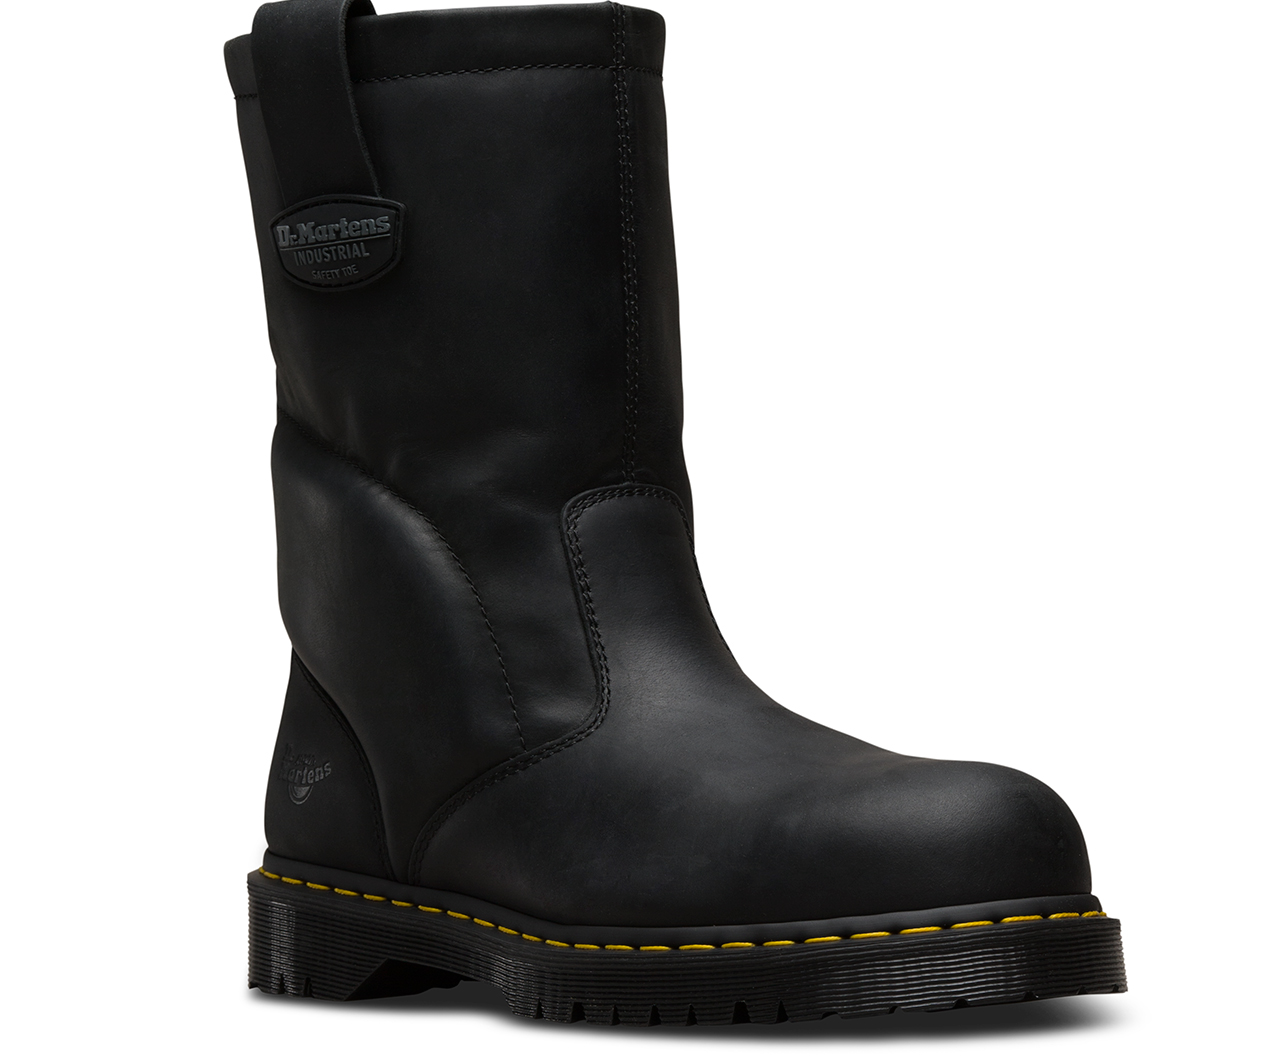 Extra Wide Industrial Boots | Official Dr. Martens Store